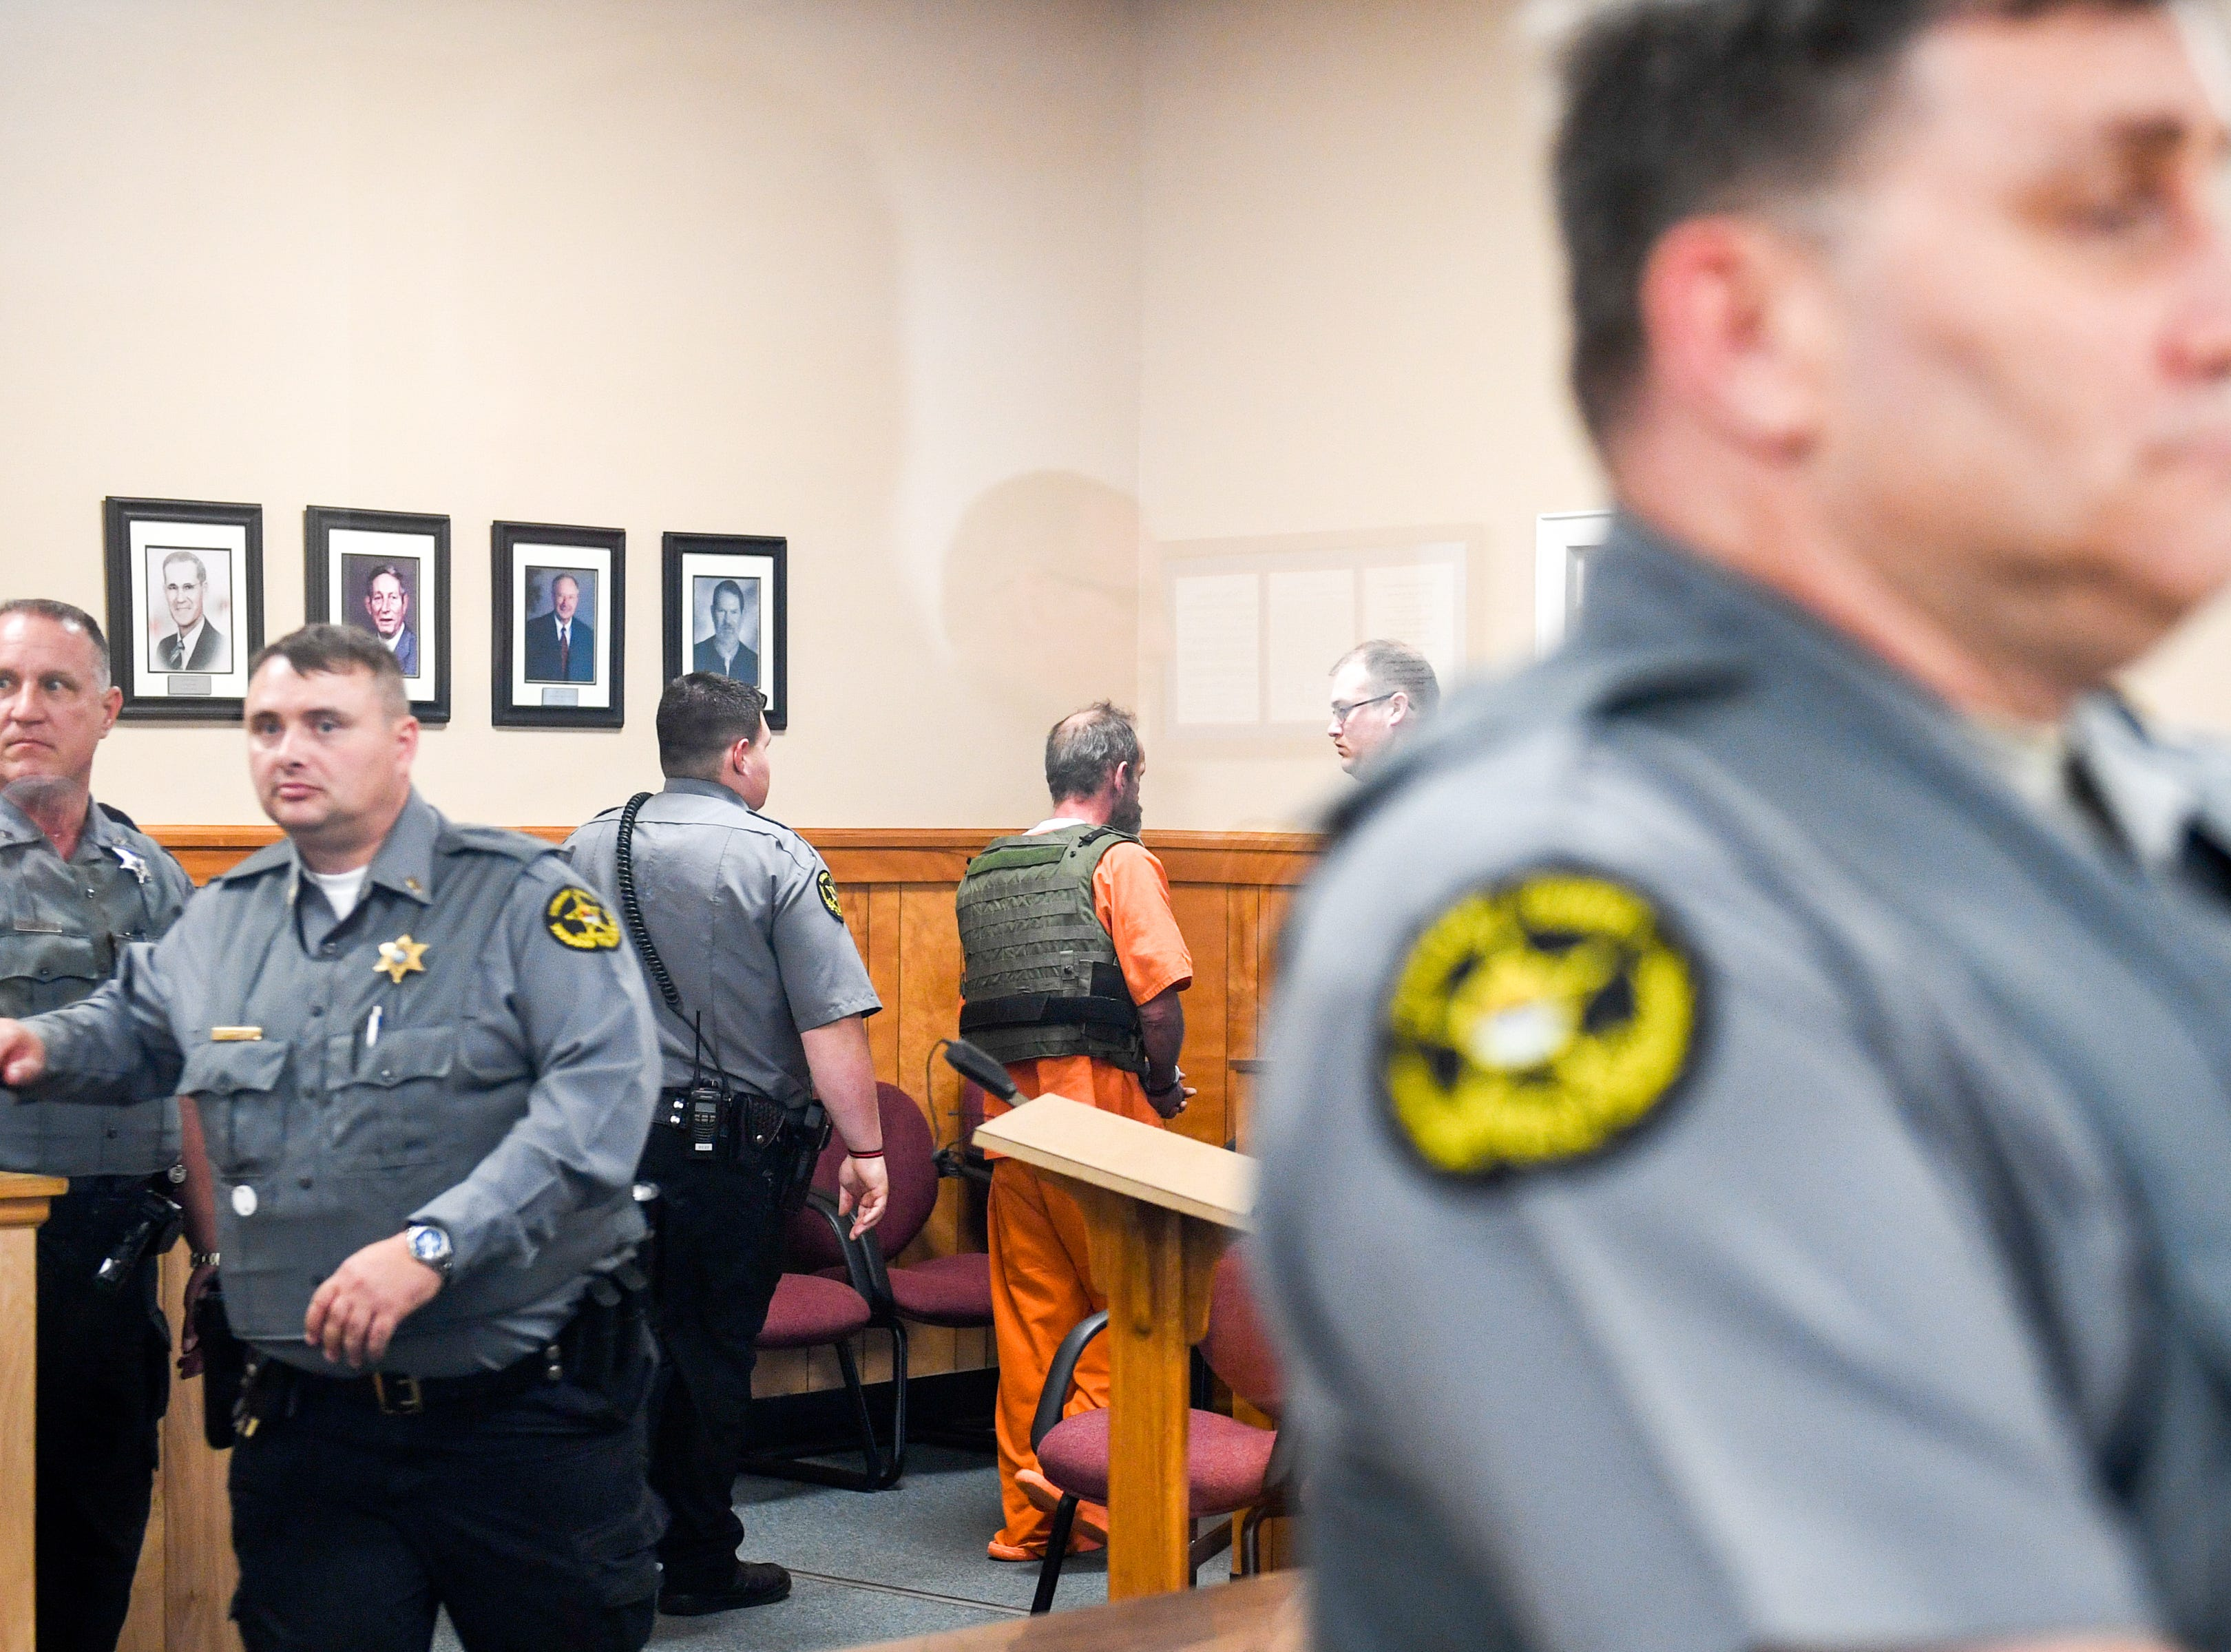 Kirby Wallace, 53, exits the courtroom after the preliminary hearing for charges including the killing of Indian Mound resident Brenda Smith at the Stewart County Courthouse Tuesday, Nov. 6, 2018, in Dover, Tenn. Wallace was caught Oct. 5 following a seven-day manhunt that expanded into Montgomery County.